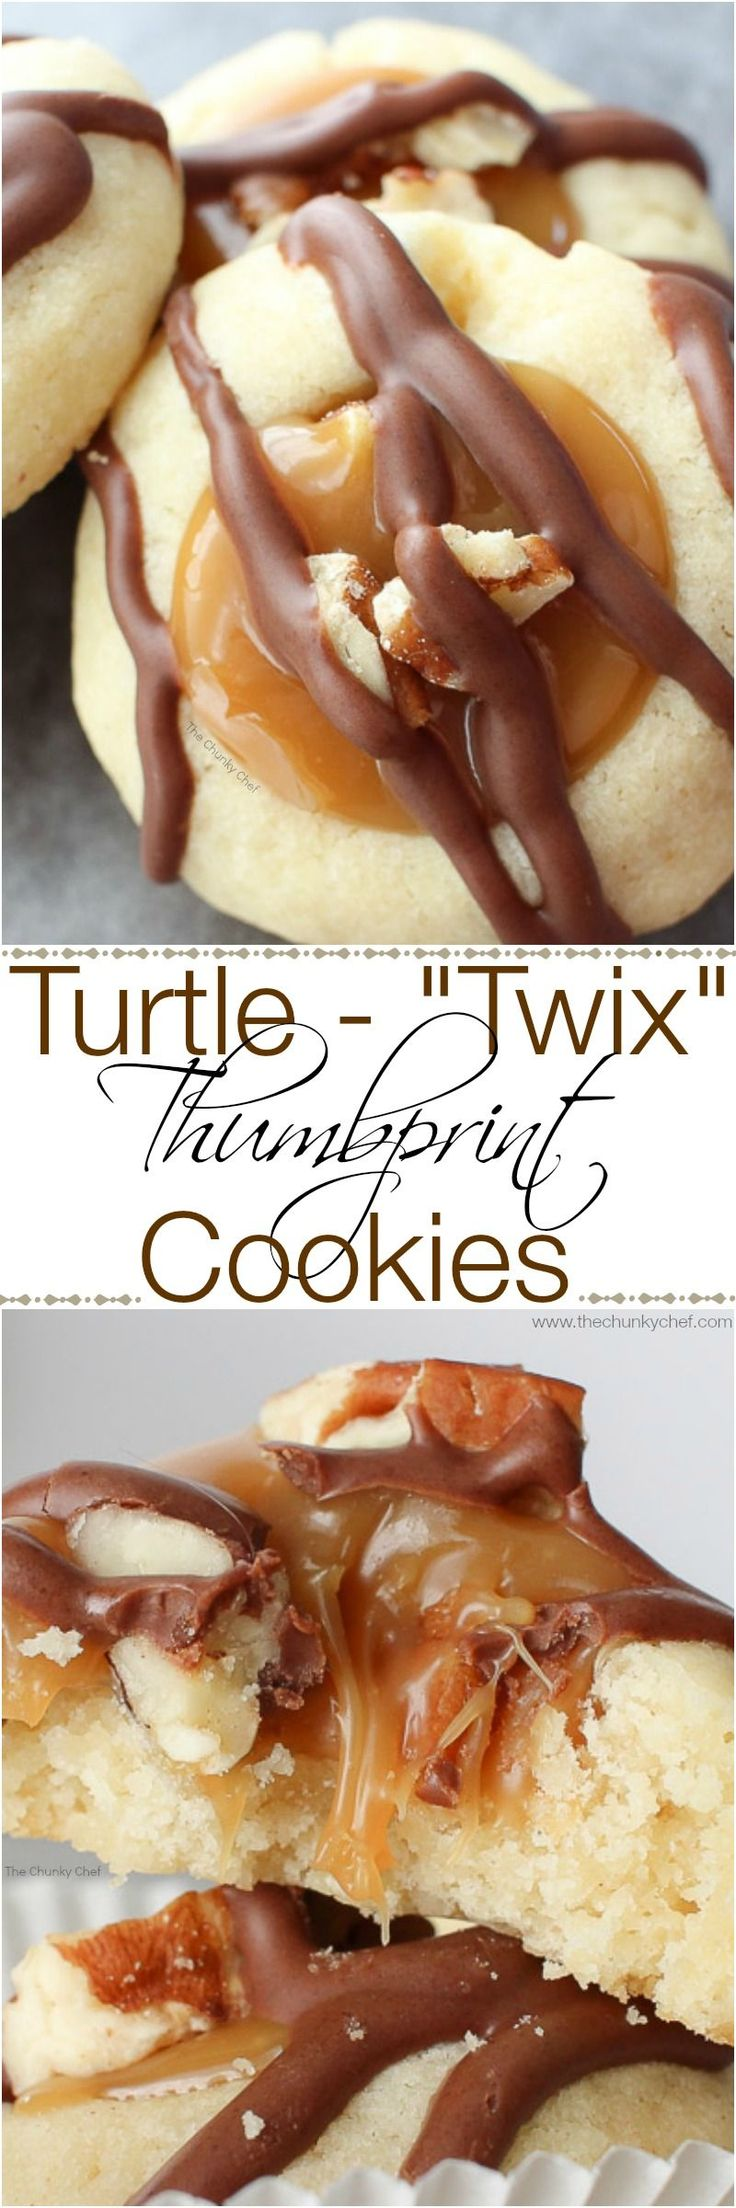 Turtle-Twix Thumbprint Cookies | Posted By: DebbieNet.com